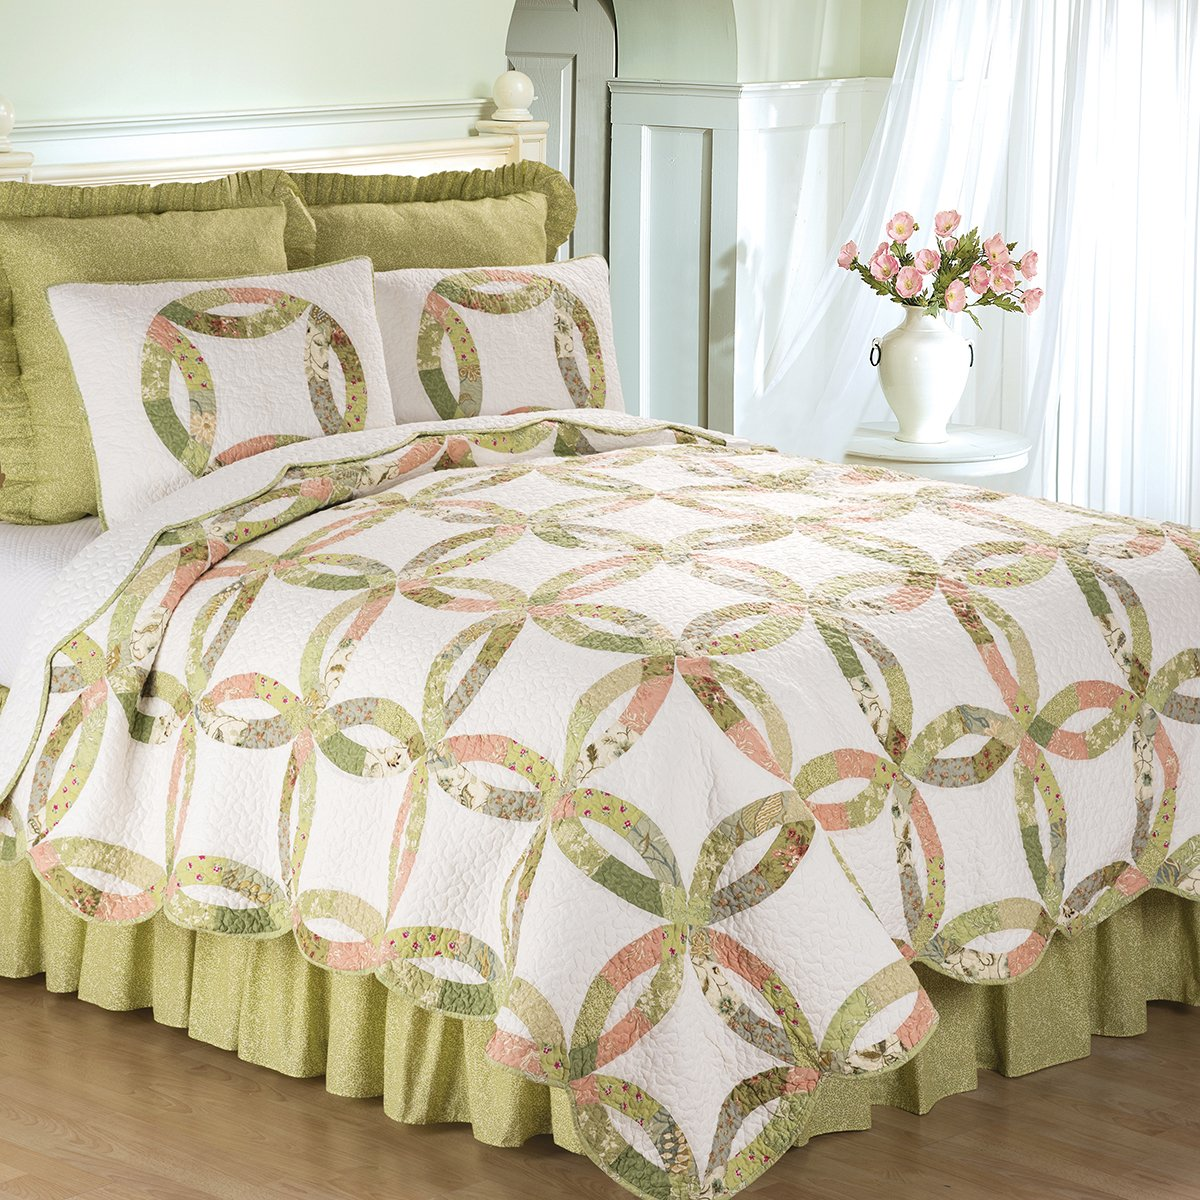 C&F Home Annie's Wedding Ring 3 Piece Quilt Set All-Season Reversible Bedspread Oversized Bedding Coverlet, Full/Queen Size, Green